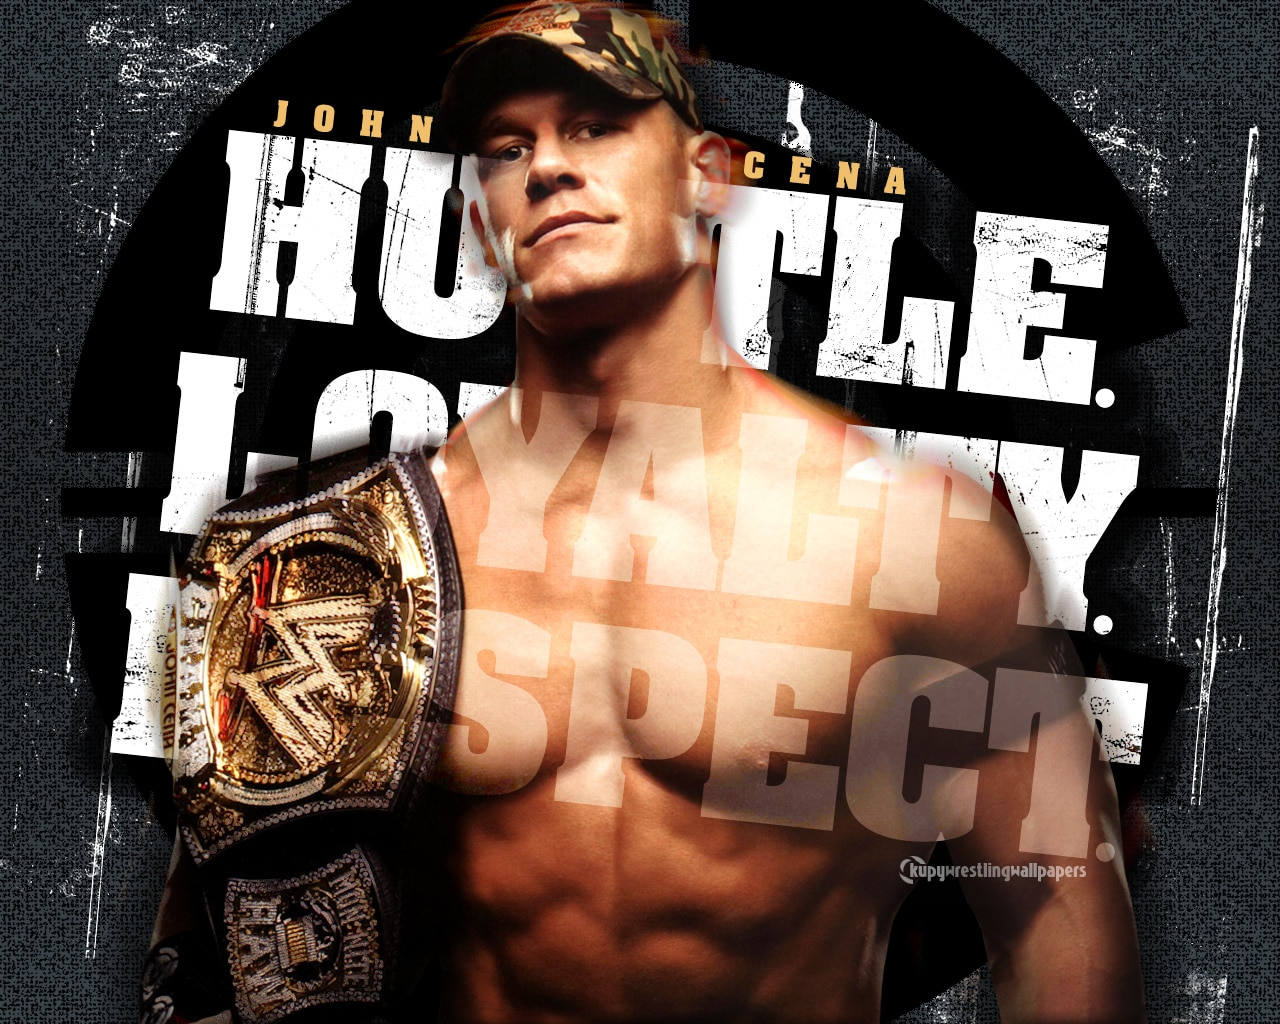 John Cena holding the WWE championship.